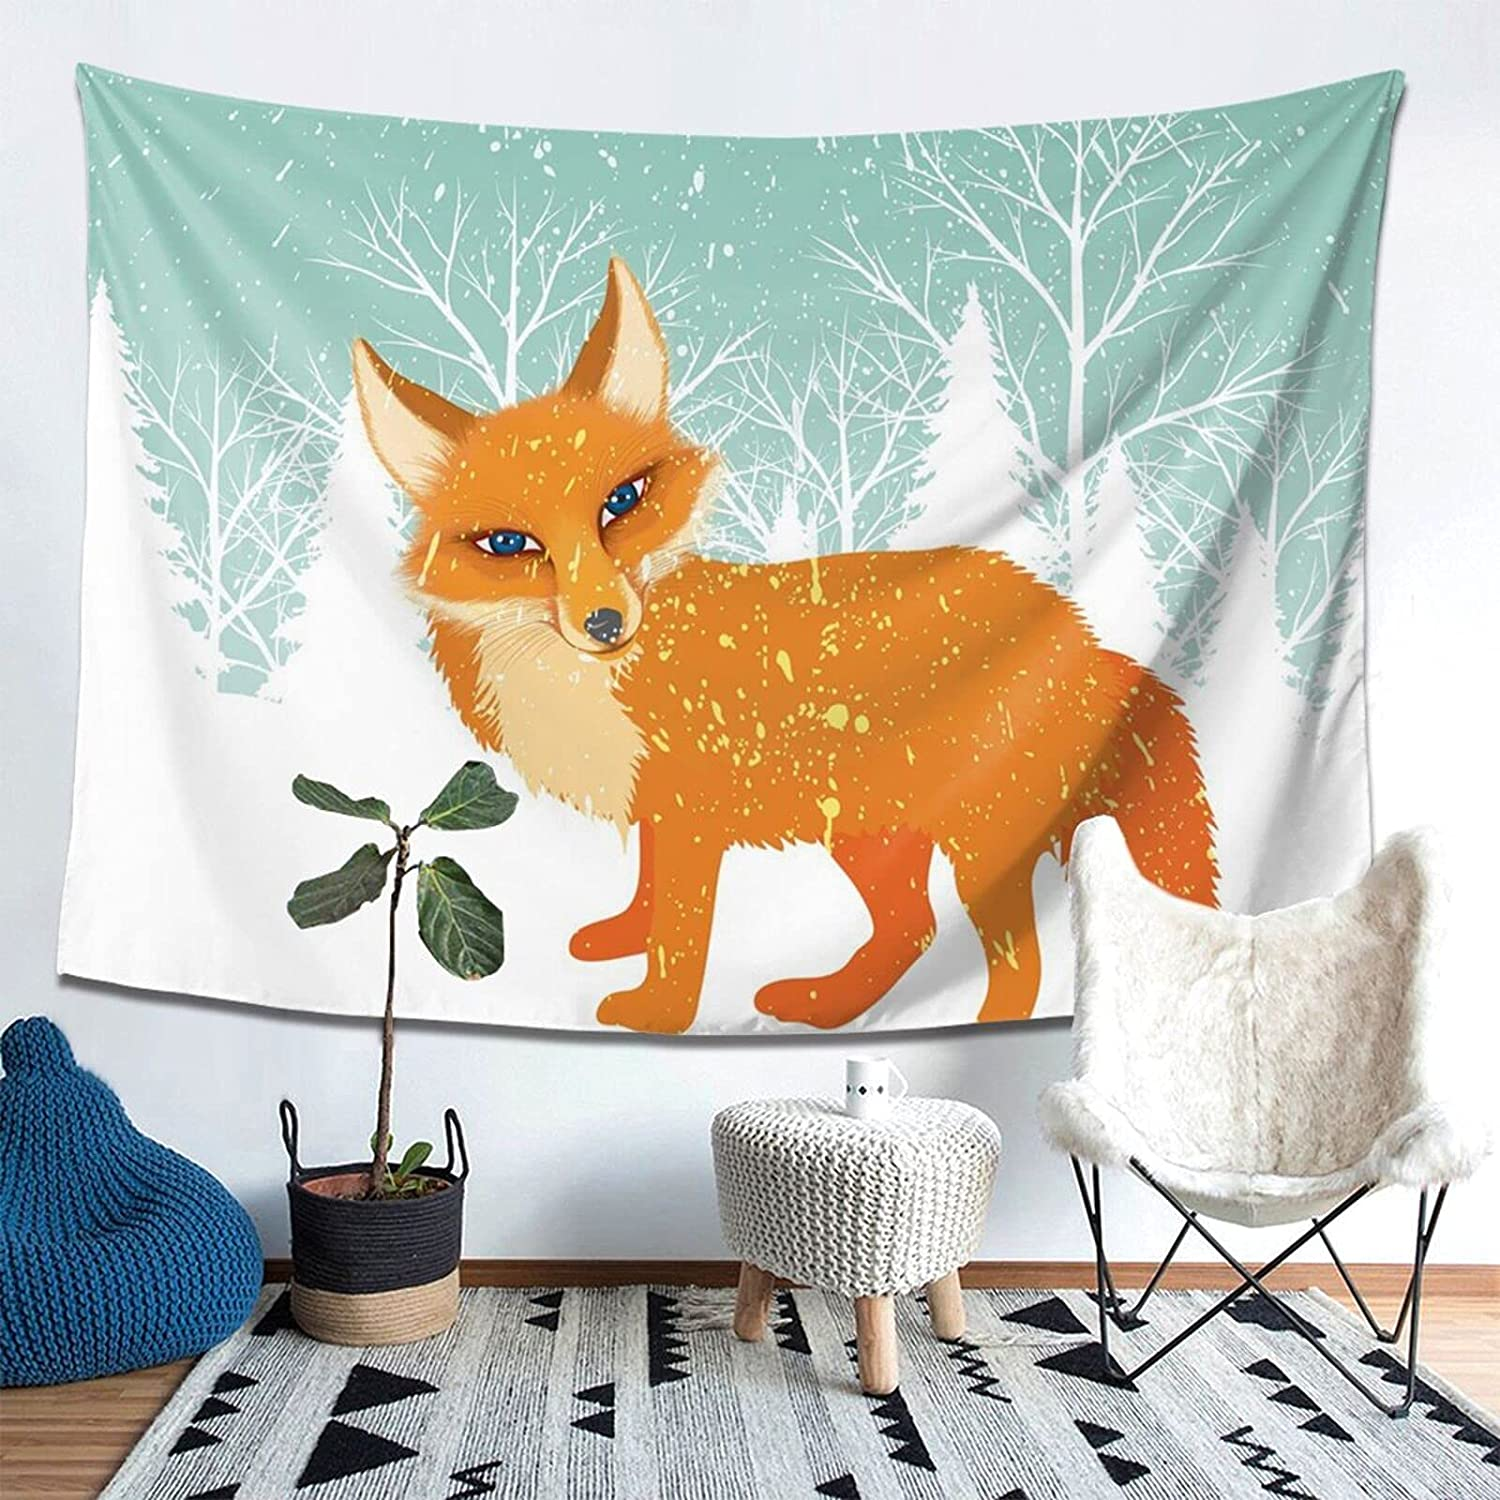 Fox In Winter Print Tapestry,Wall Hanging Tapestries Wall Home Decor For Bedroom Dorm Room (80 X 60 Inches)